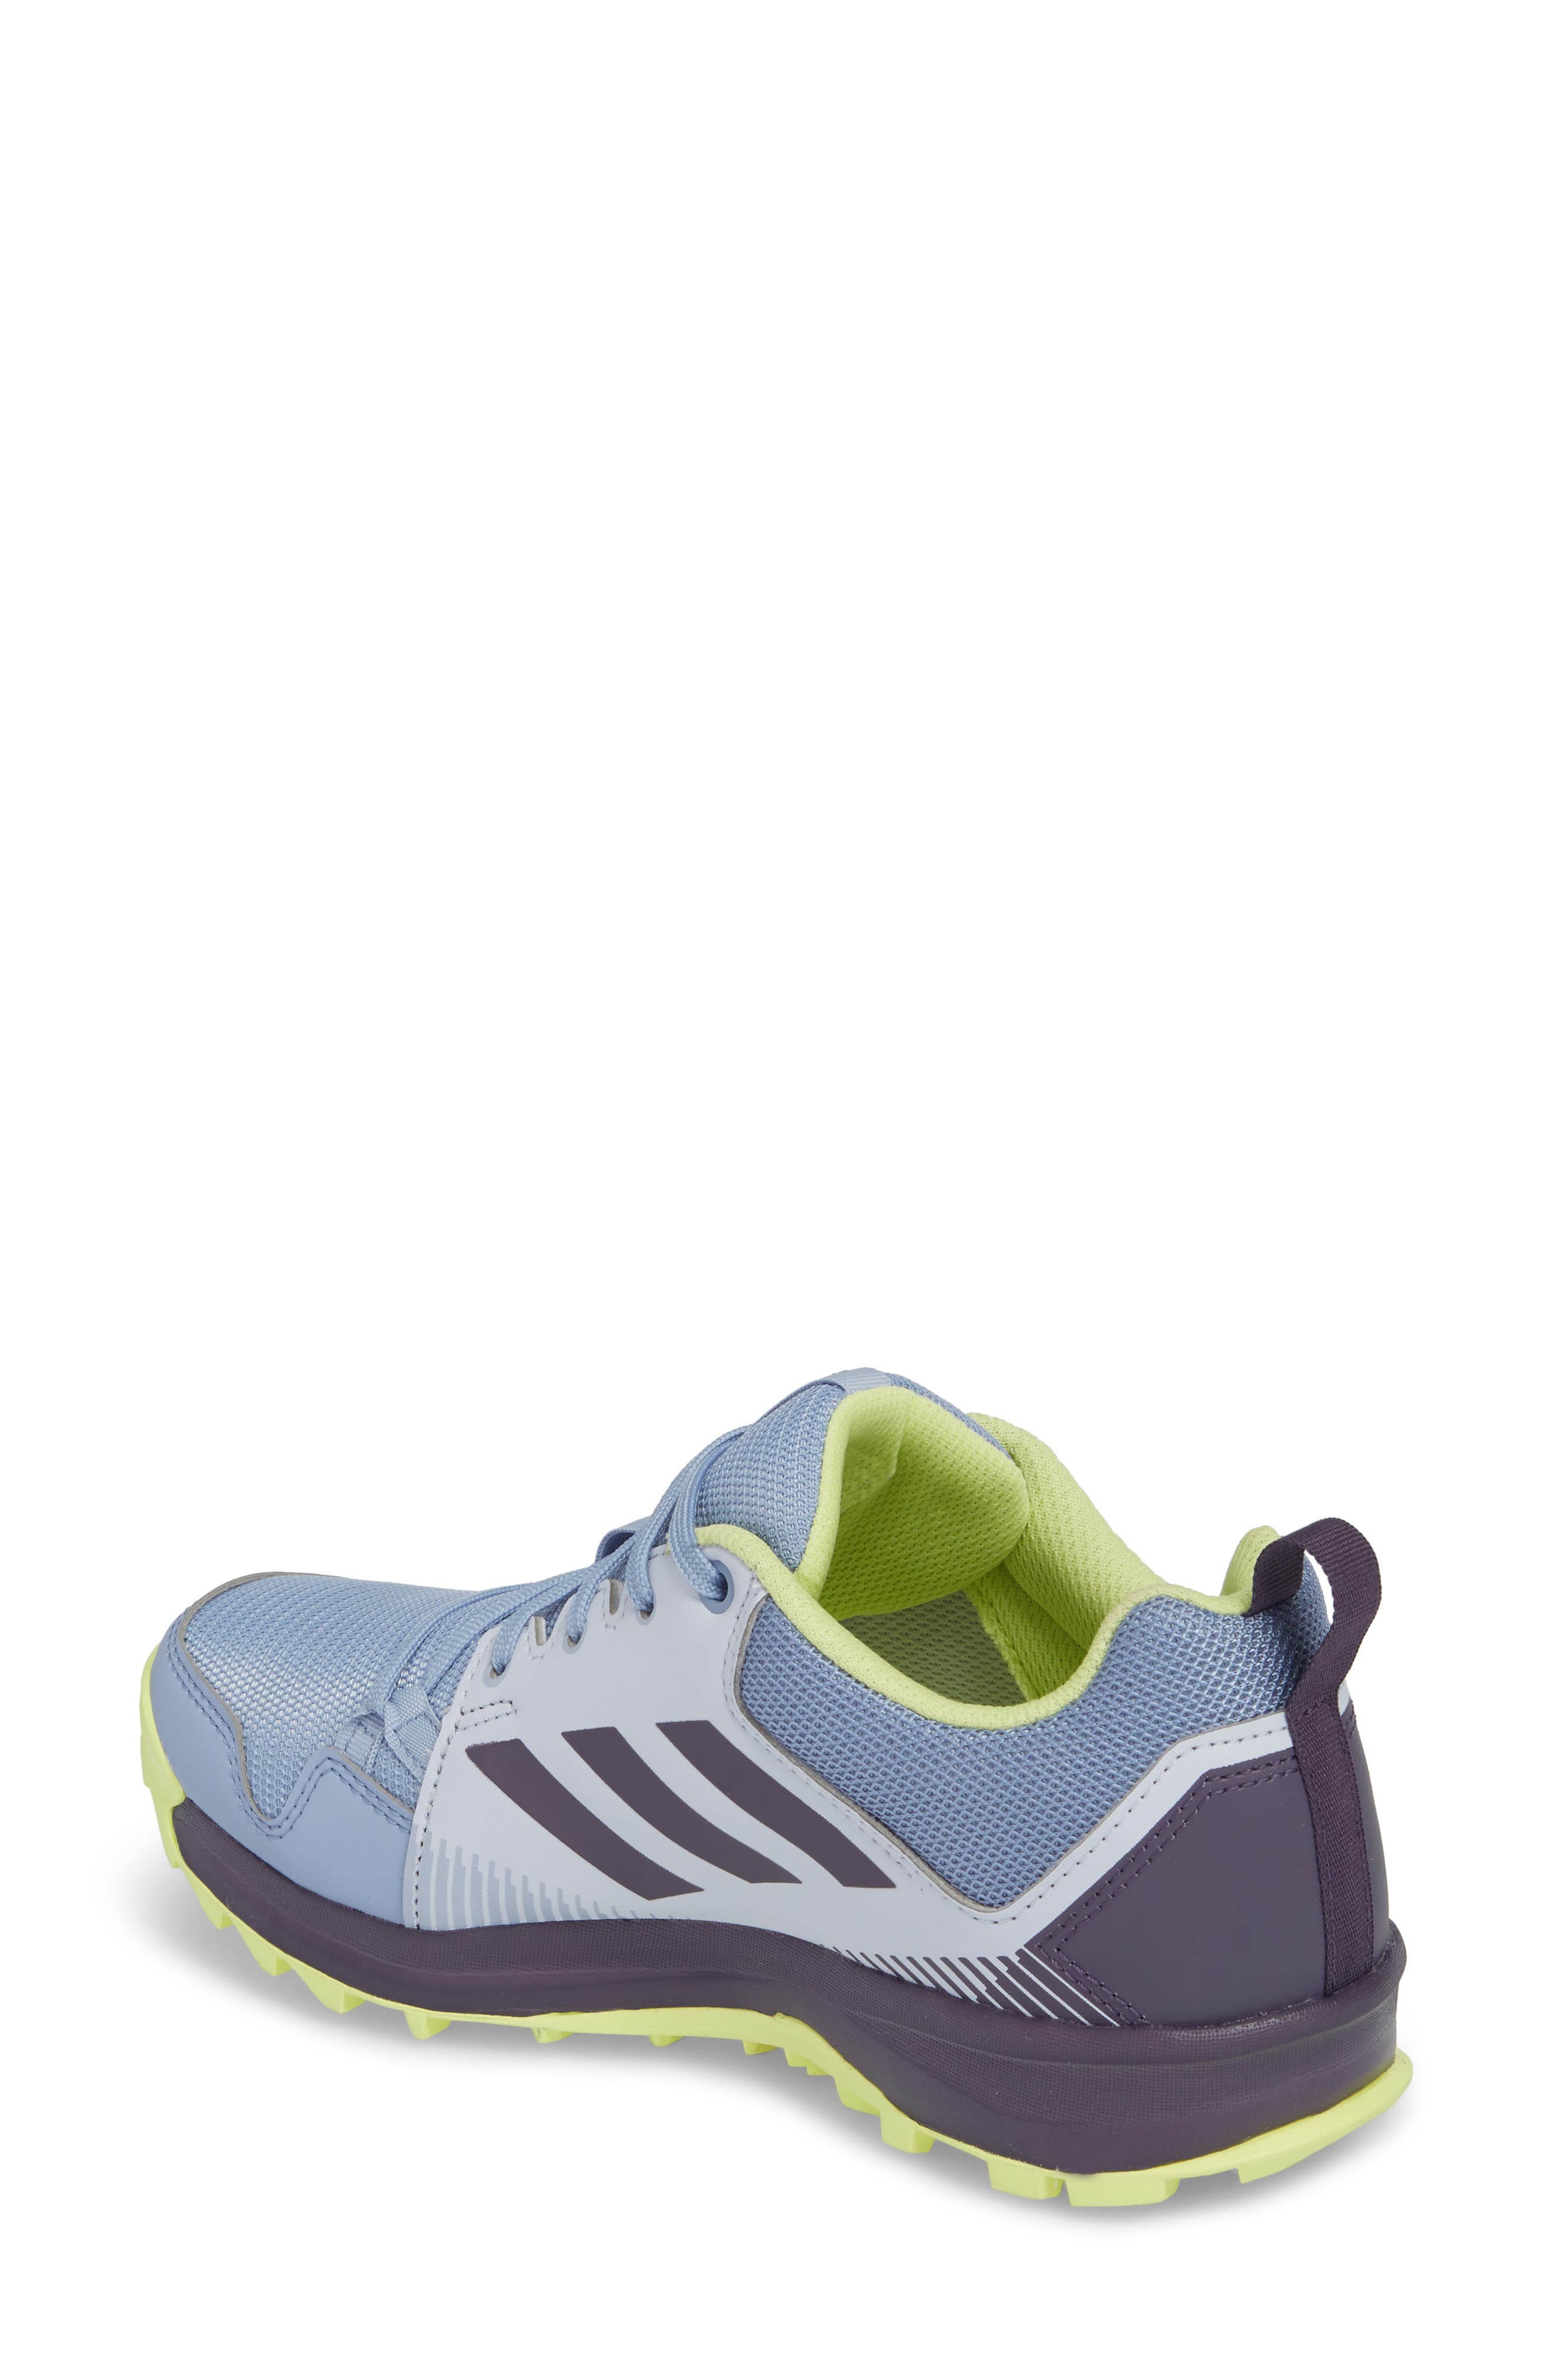 'Tracerocker' Athletic Shoe,                             Alternate thumbnail 2, color,                             Aero Blue/ Purple/ Yellow